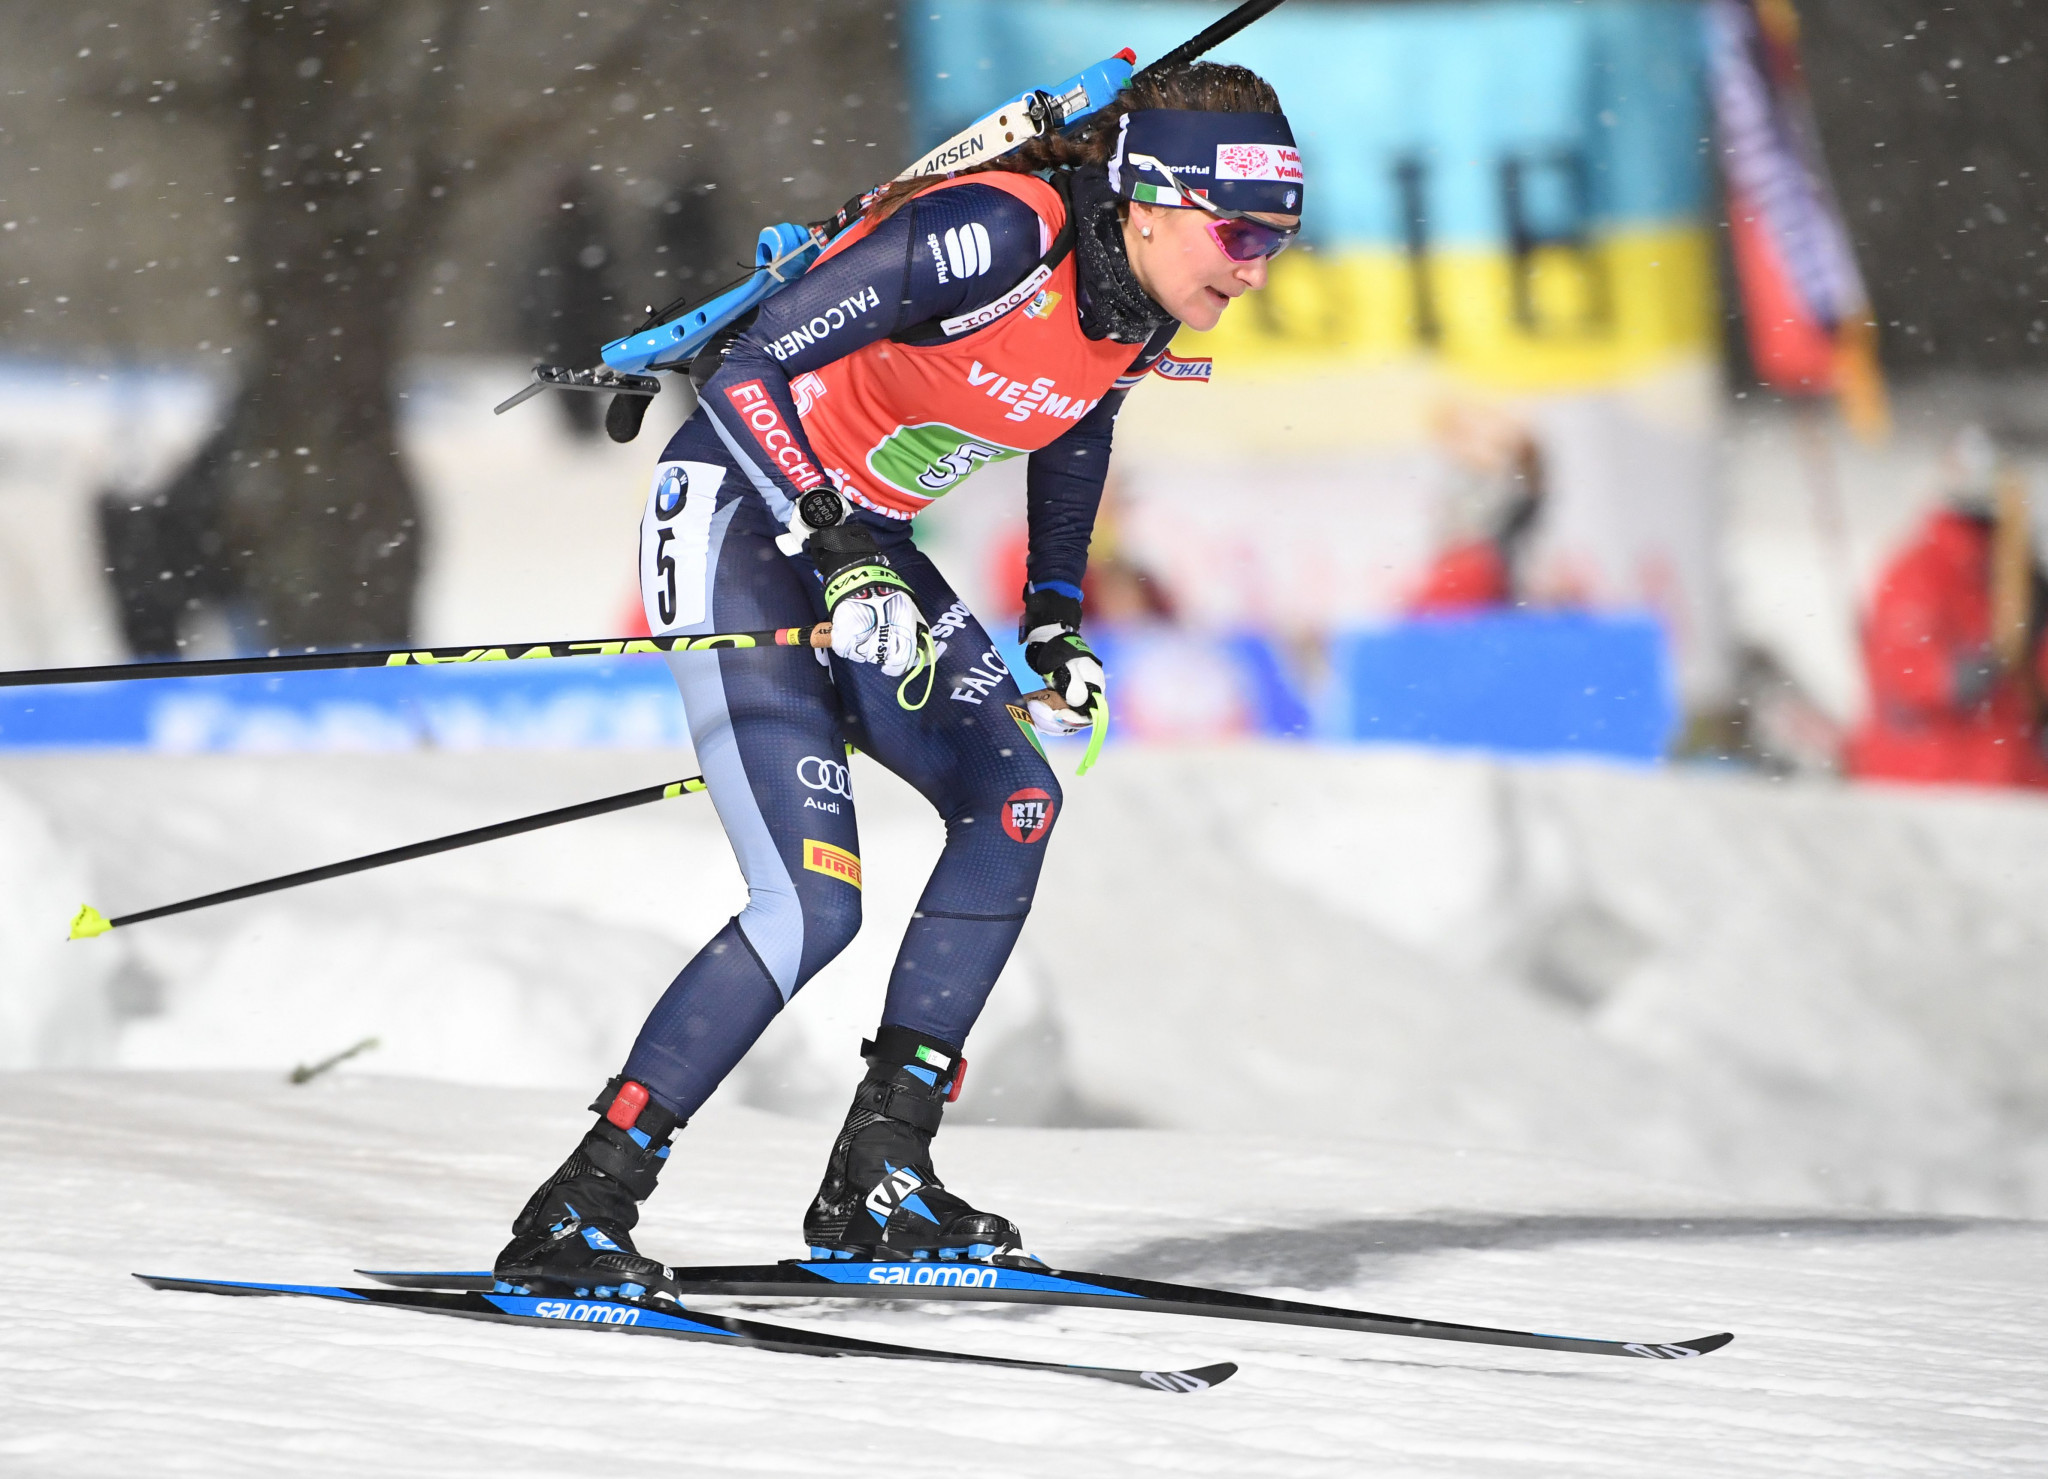 Nicole Gontier has retired from biathlon at the age of 29 ©Getty Images